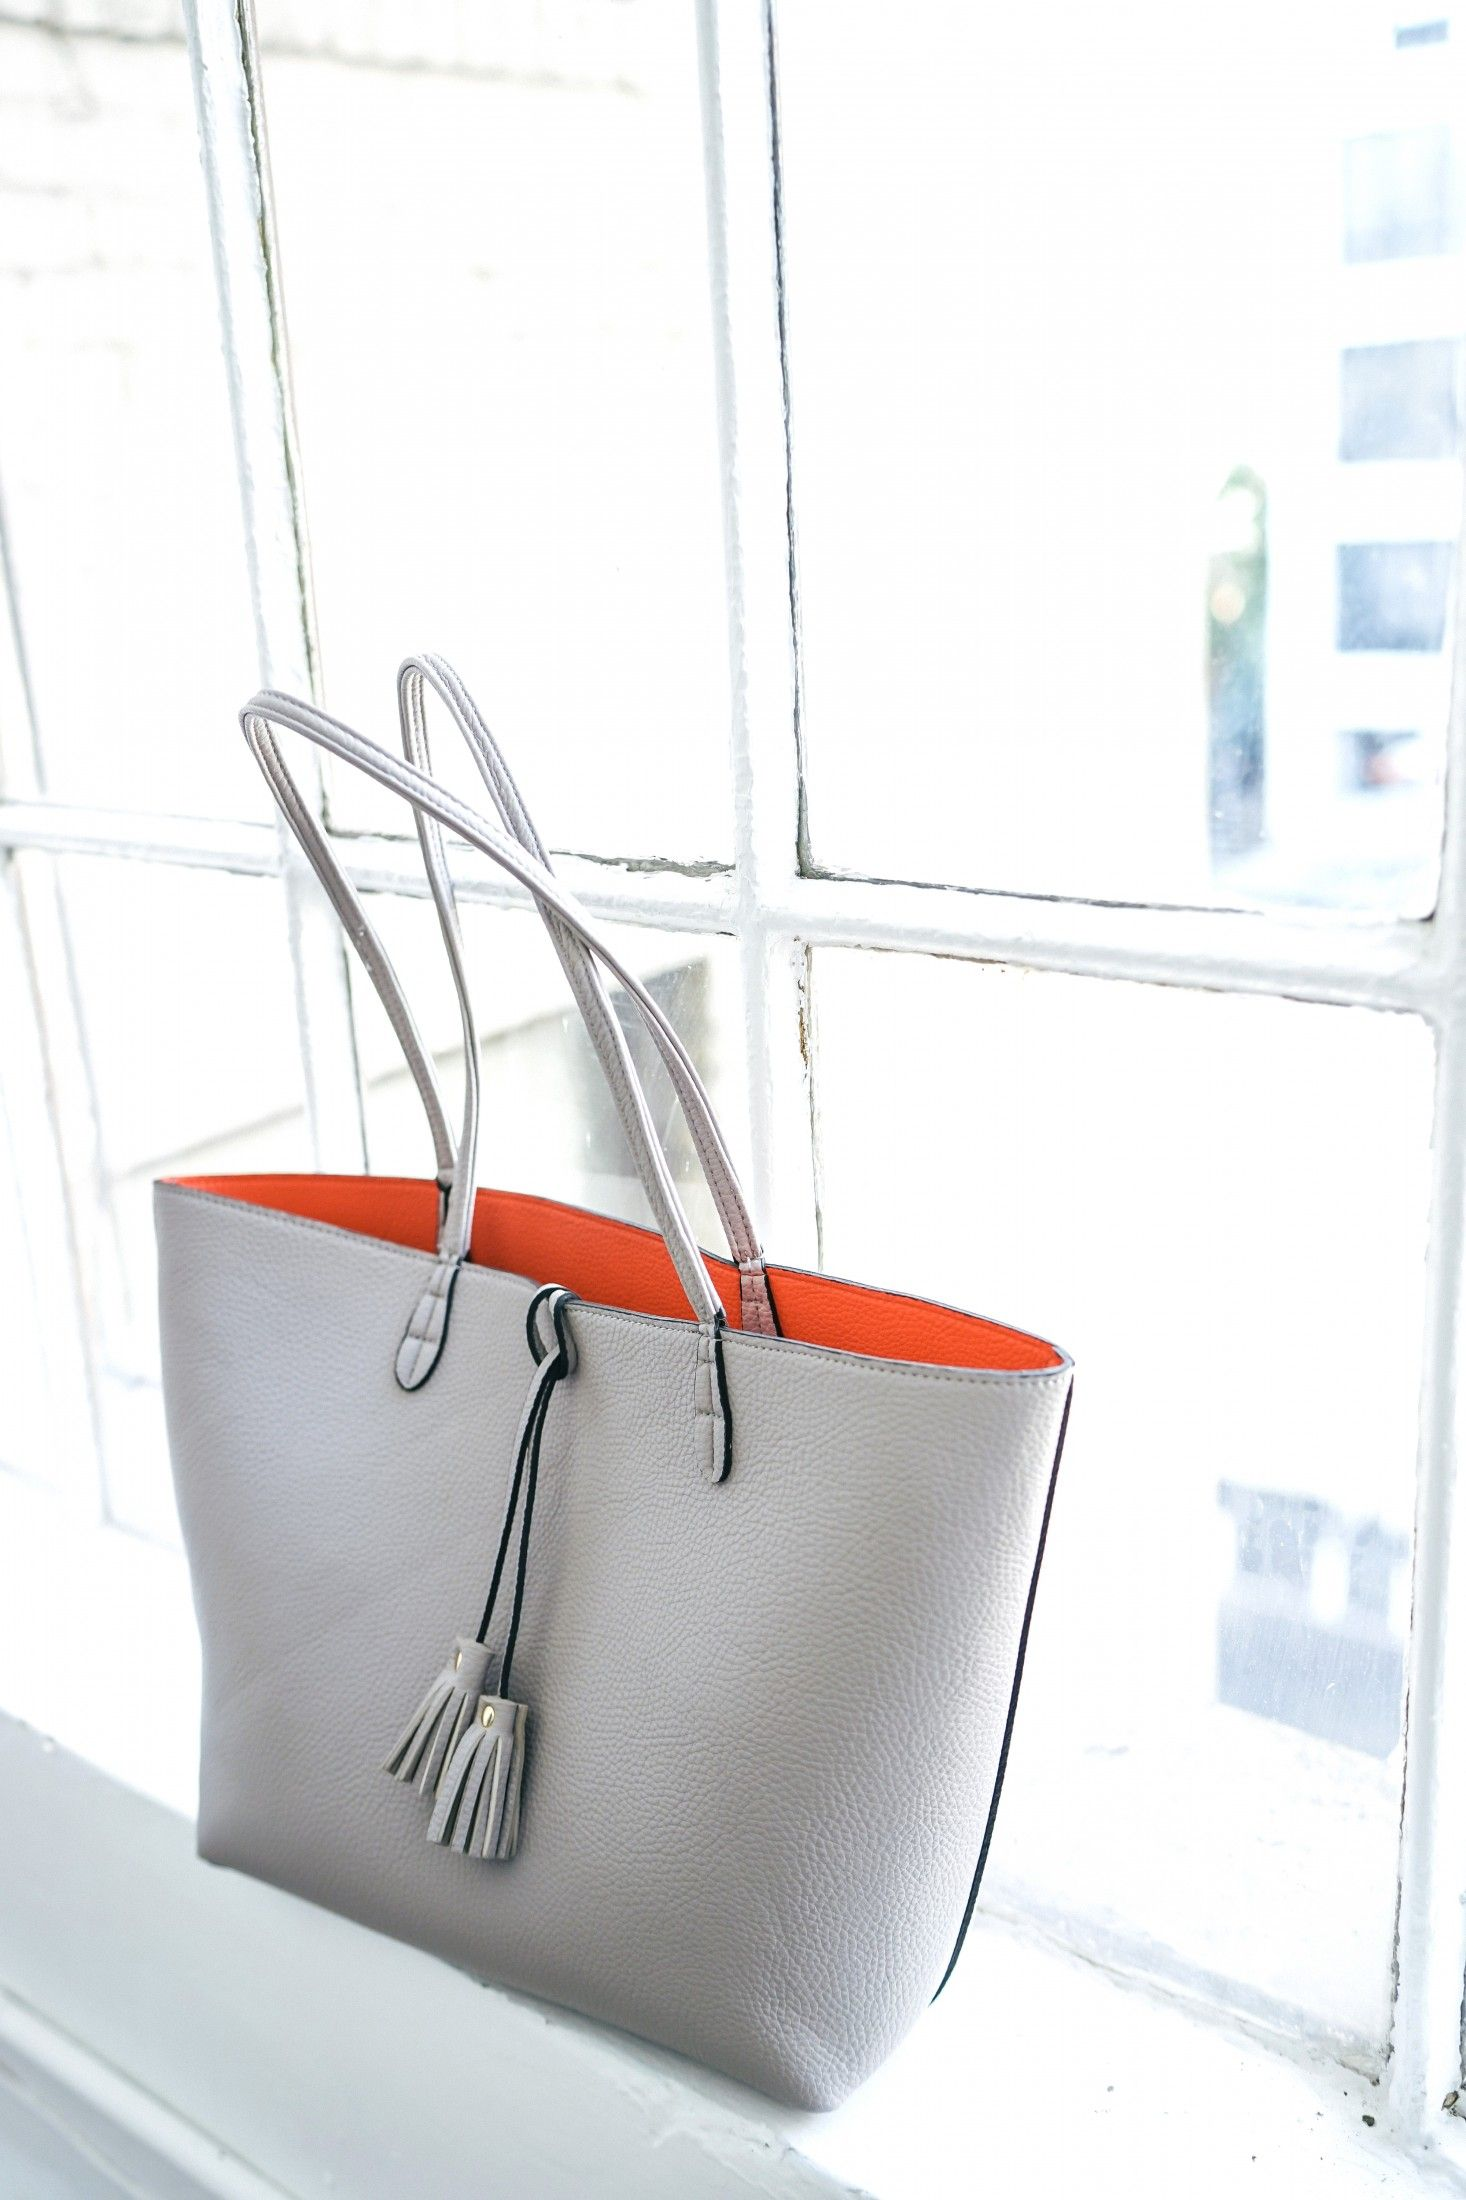 TheSoleSocietyreversible Campbell tote is the perfect tote for any occasion.